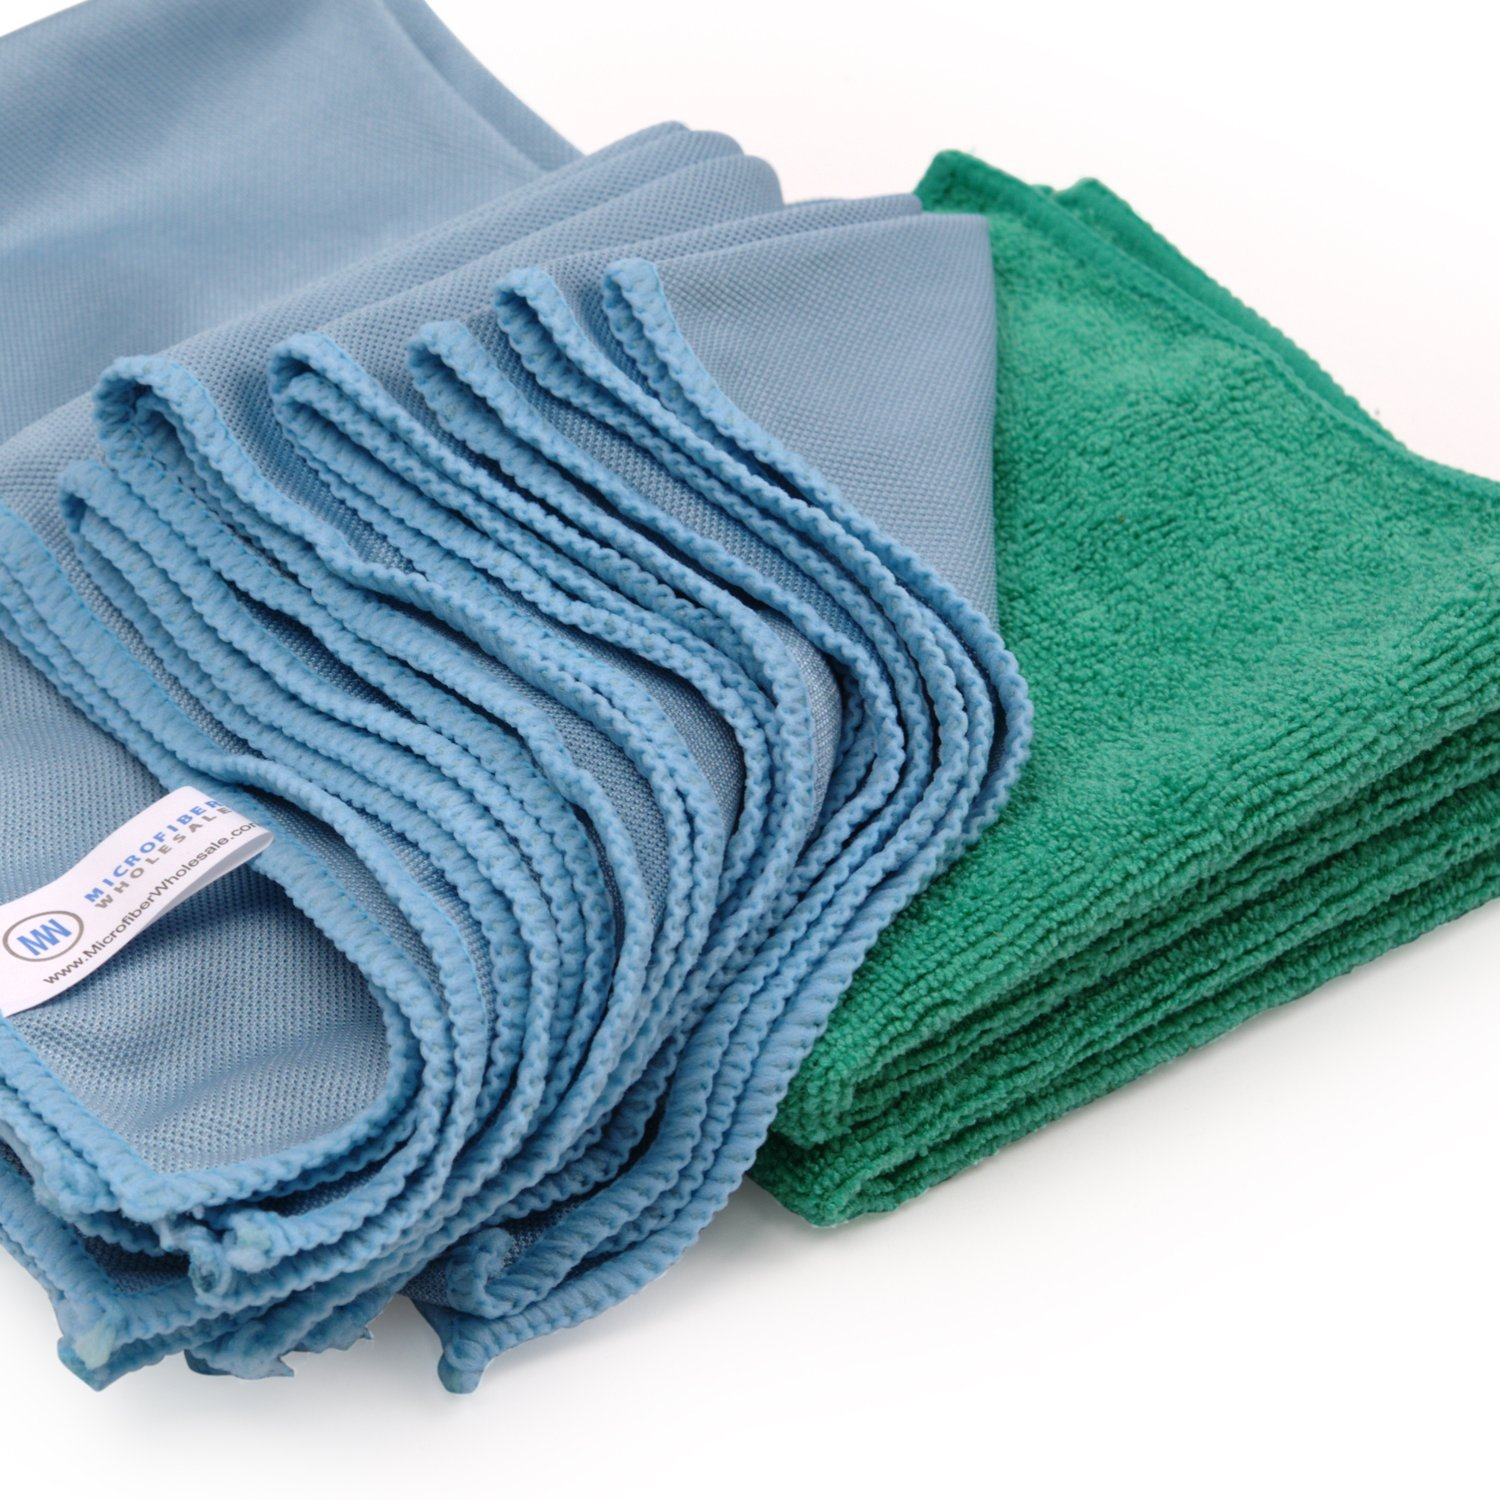 Microfiber Glass Cleaning Cloths - 8 Pack | Lint Free - Streak Free | Quickly and Easily Clean Windows & Mirrors Without Chemicals by Microfiber Wholesale